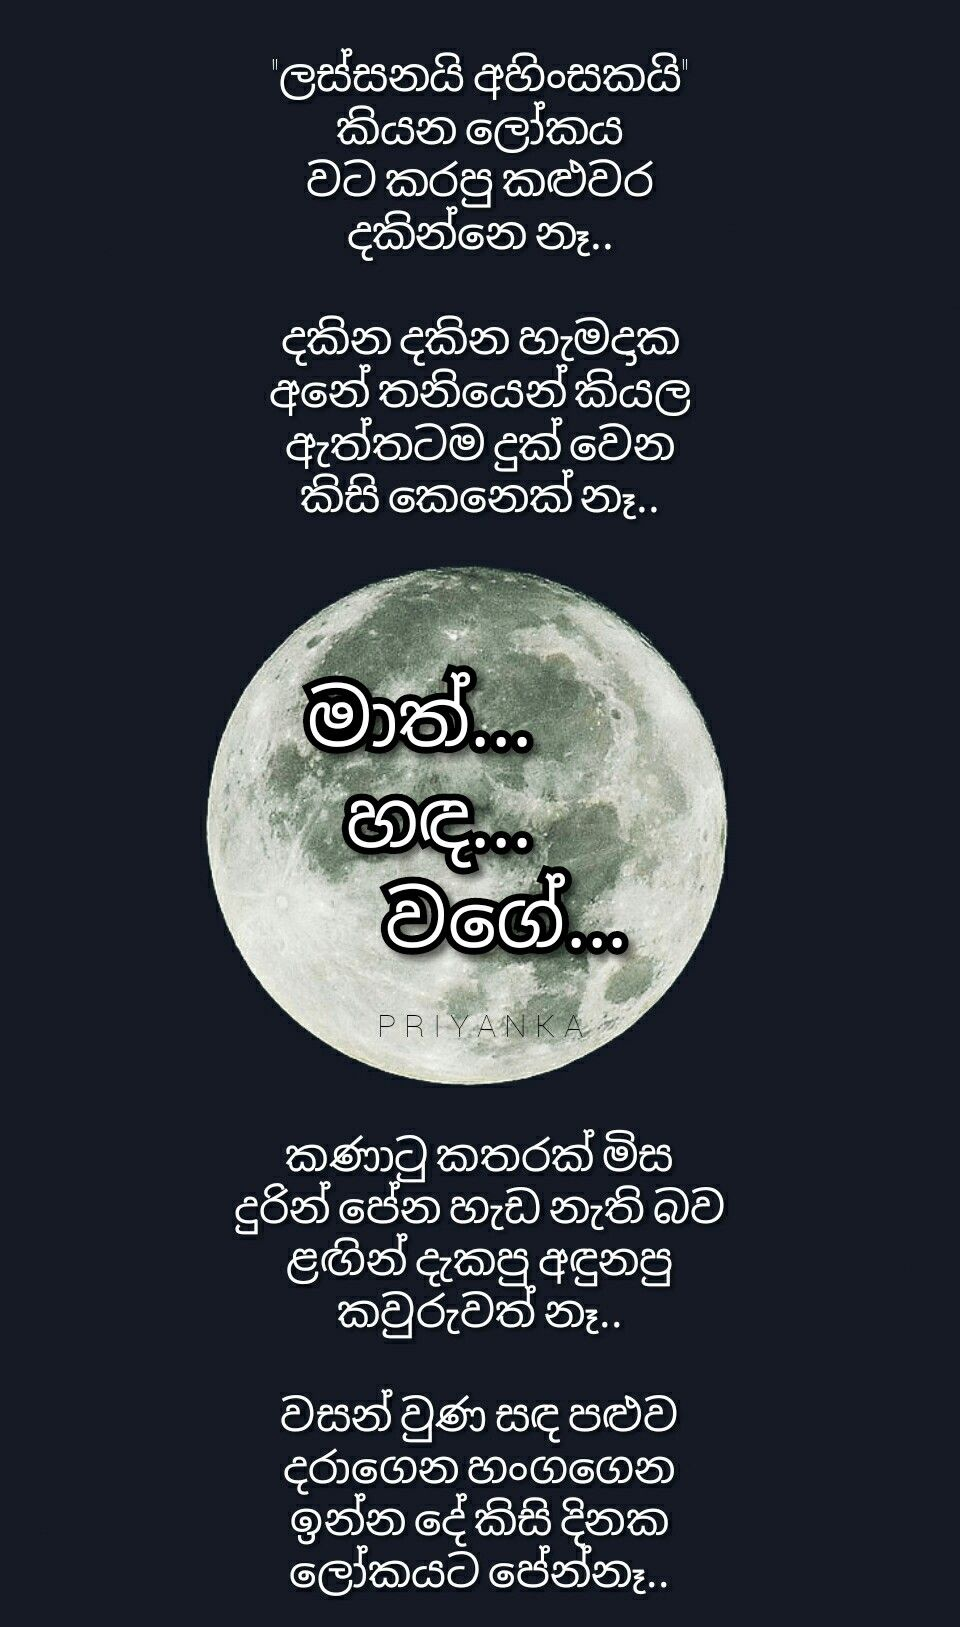 Pin by Priyanka on °• සංකල්පනා •° | Life quotes, Quotes ...